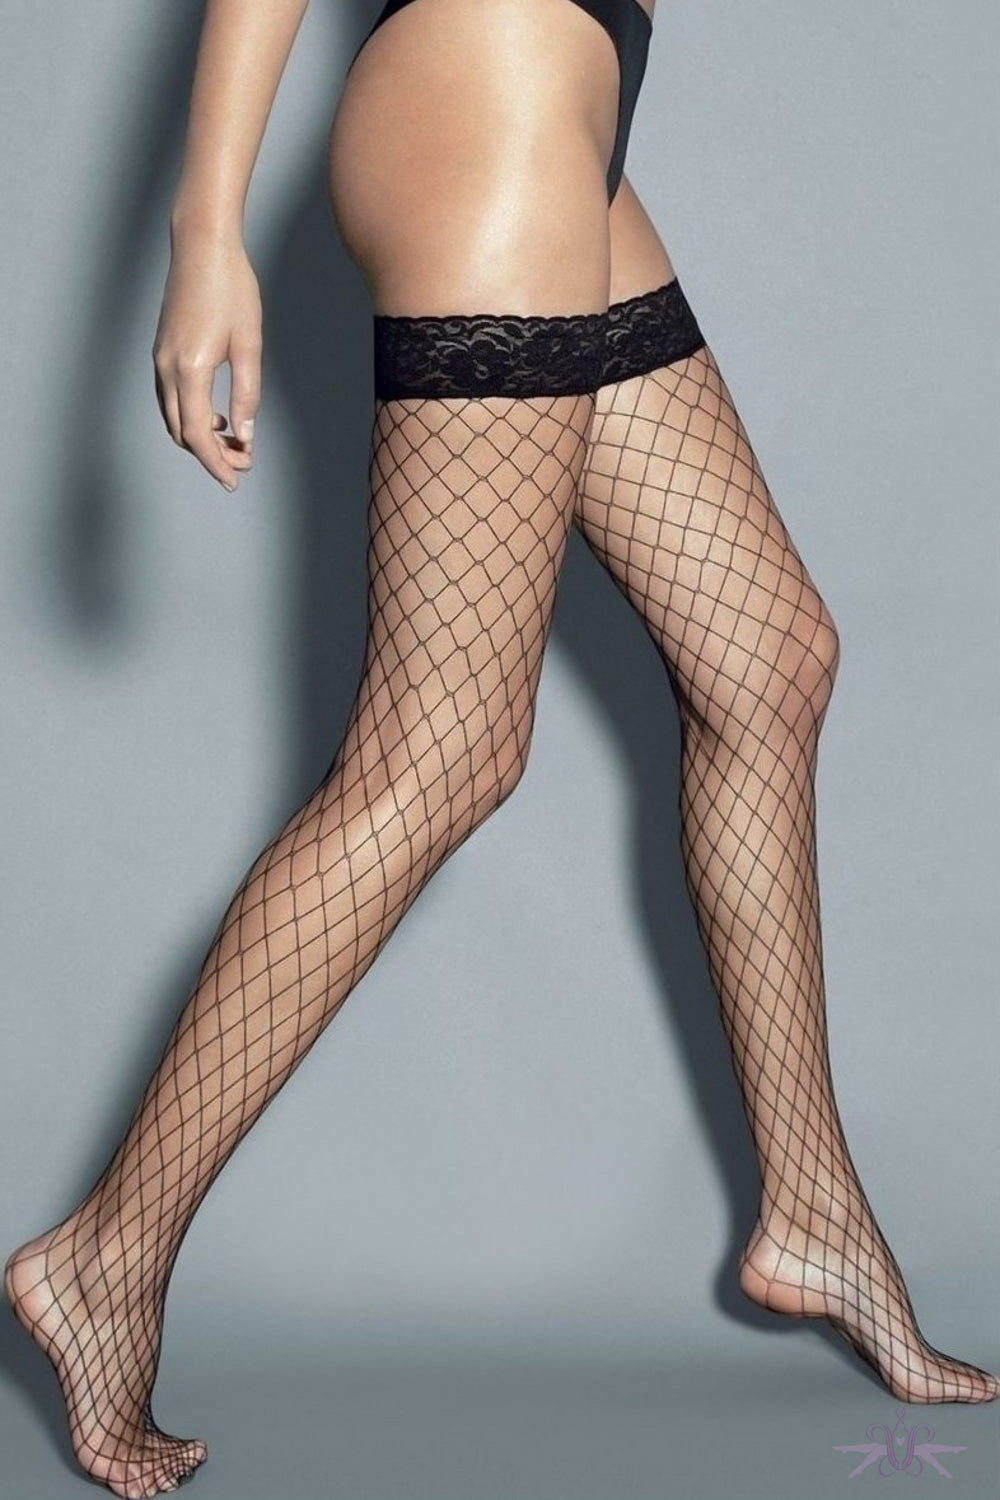 Veneziana Grande Fishnet Hold Ups